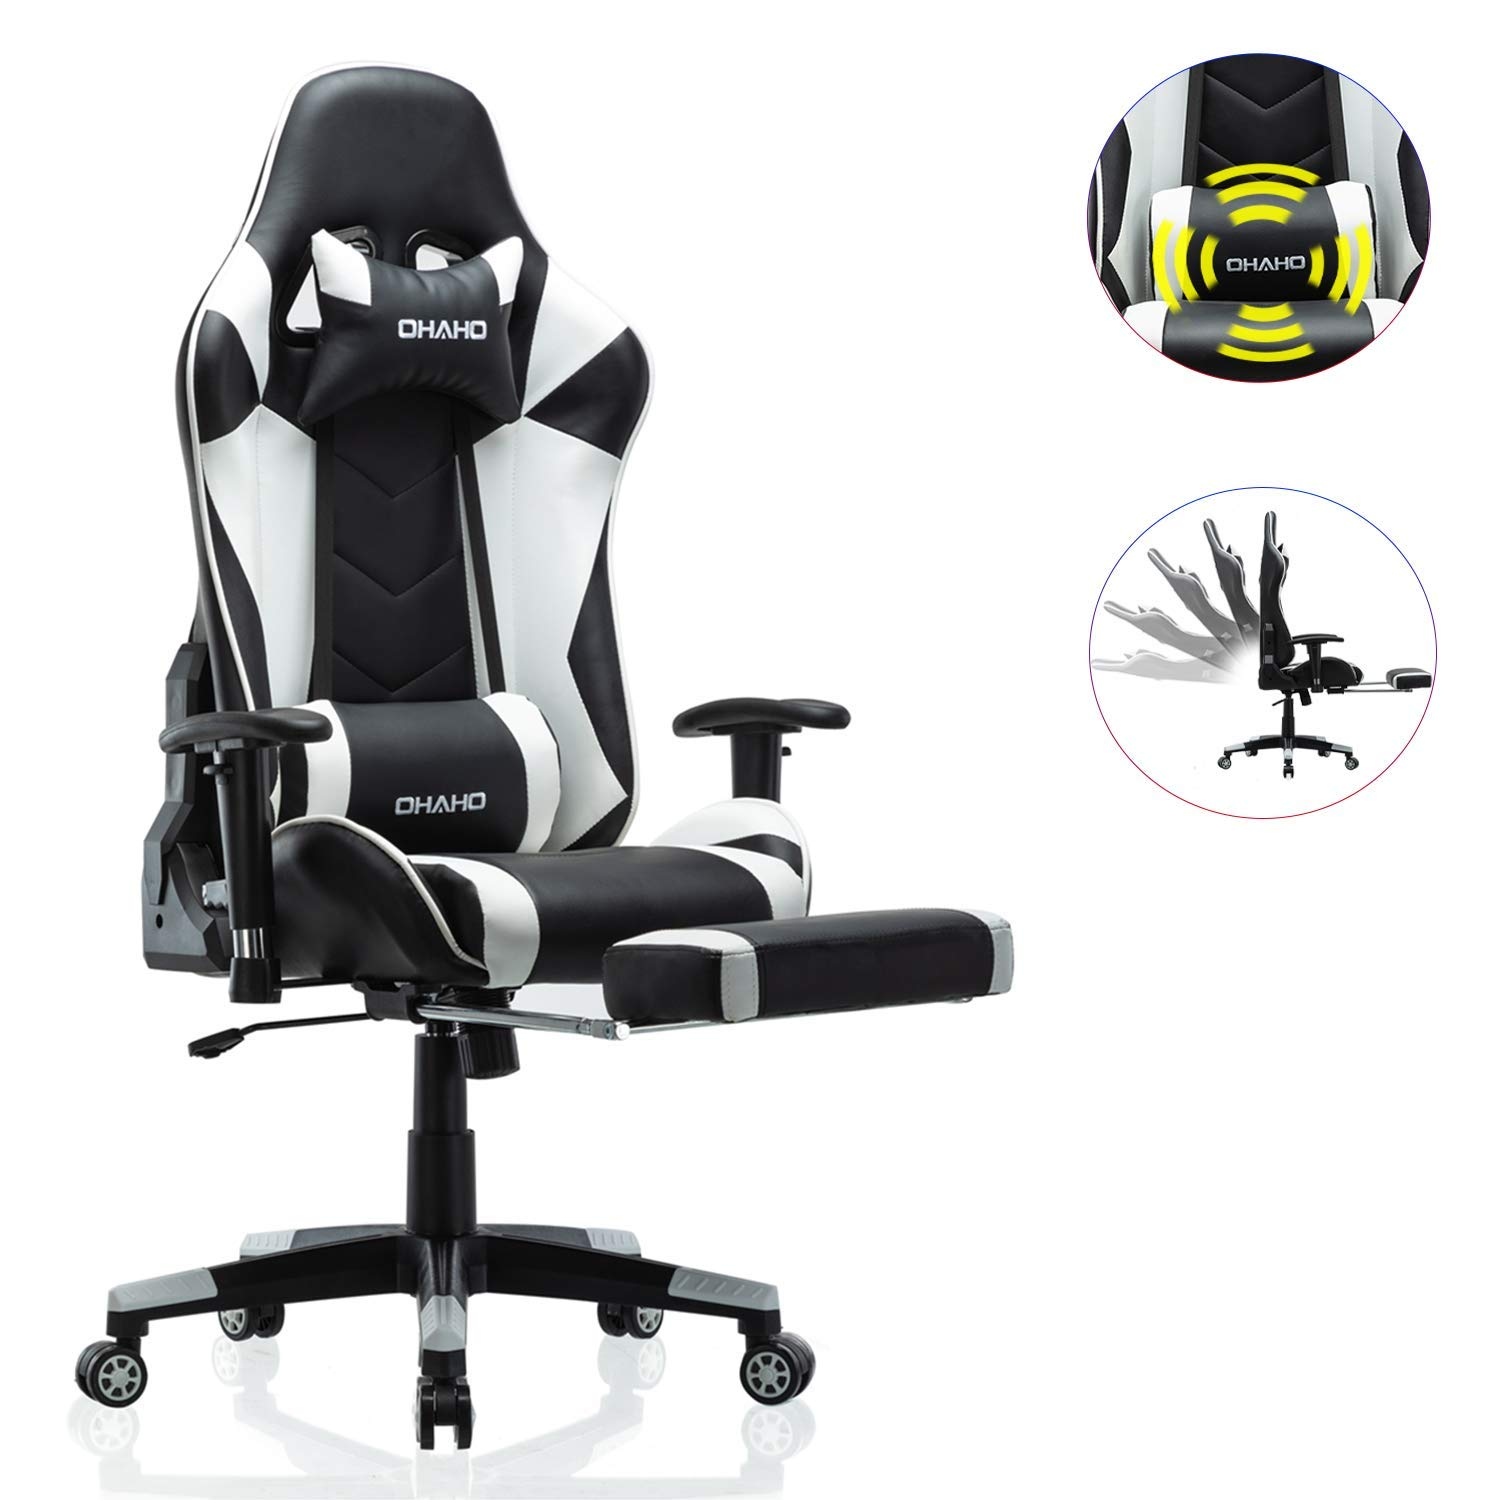 OHAHO Gaming Chair Racing Style Office Chair Adjustable Massage Lumbar Cushion Swivel Rocker Recliner Leather High Back Ergonomic Computer Desk Chair with Retractable Arms and Footrest (Black/White) by OHAHO